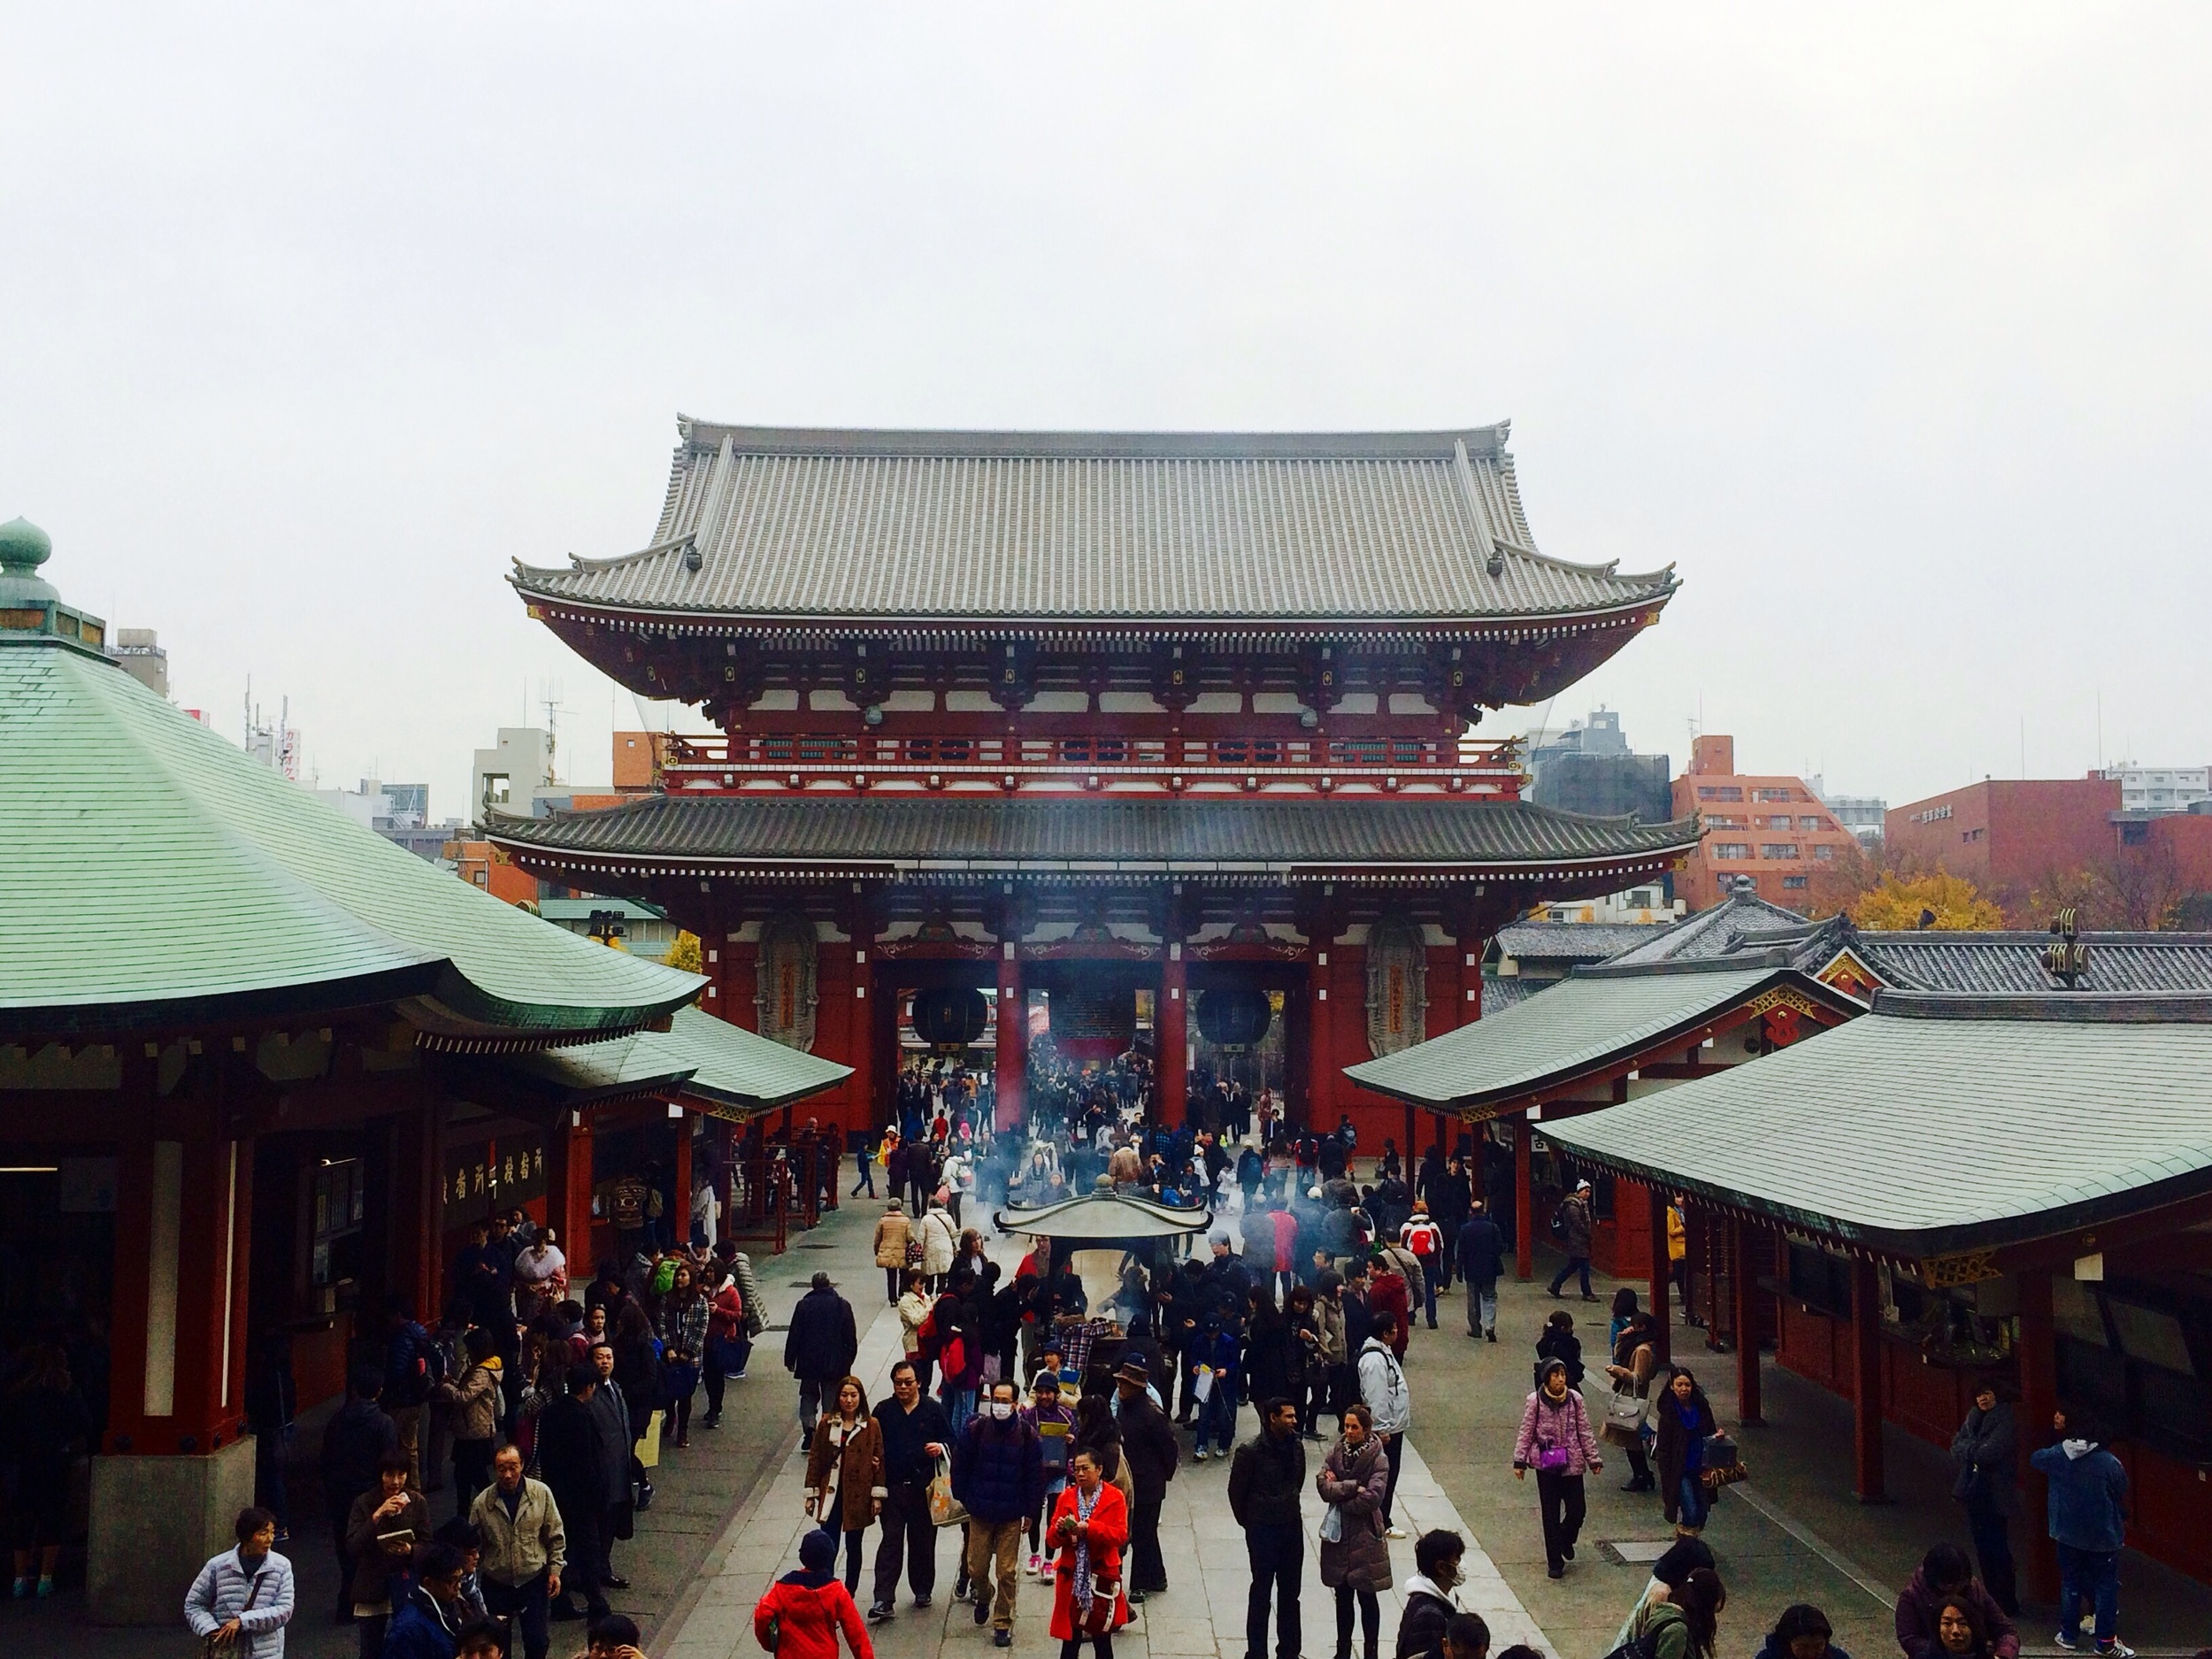 Senso-ji in Tokyo was founded in the year 645 AD